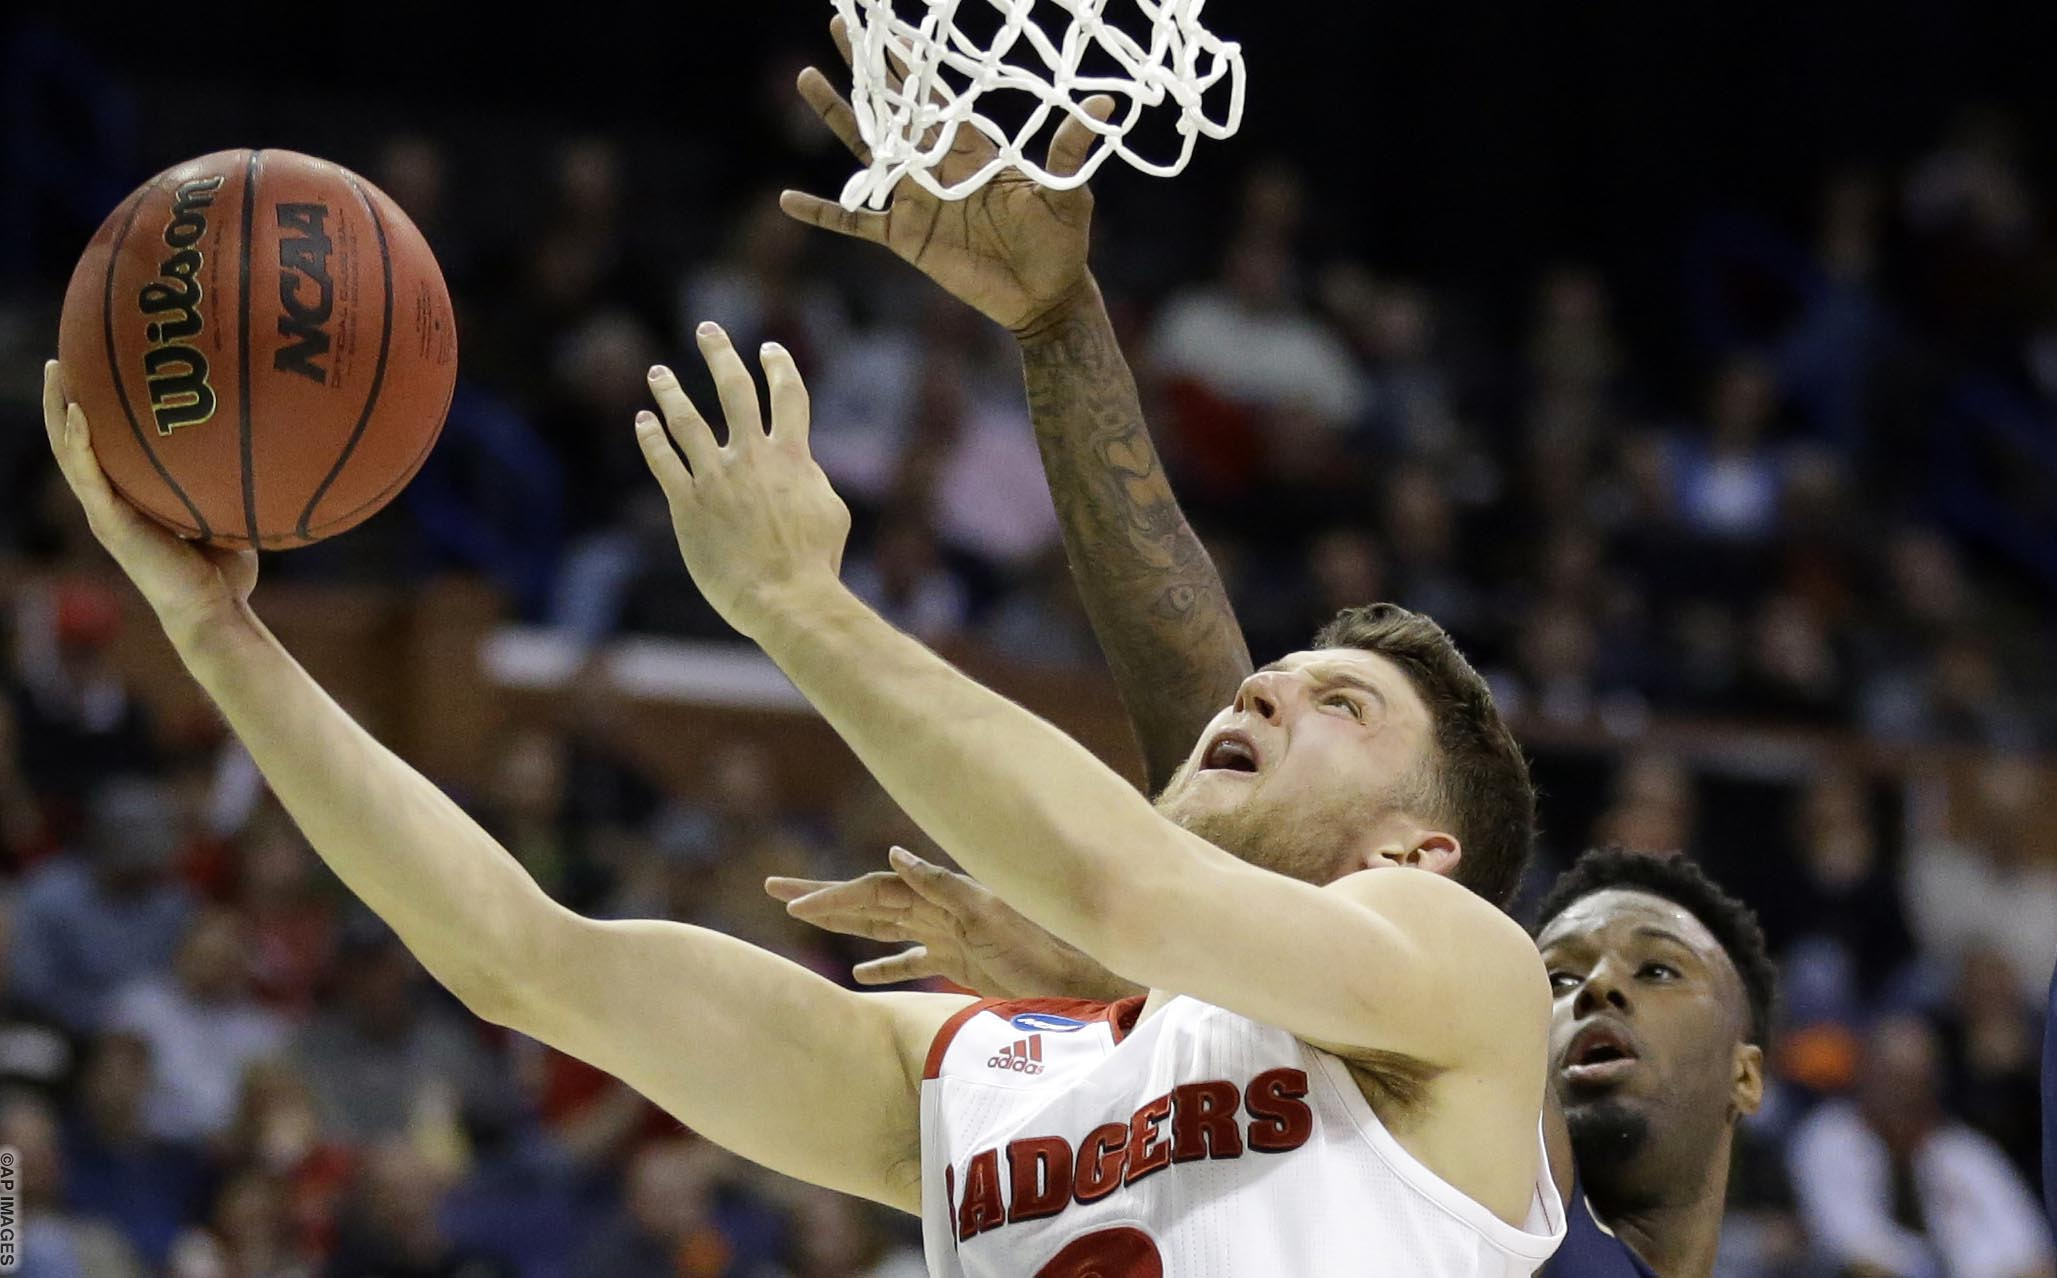 Wisconsin's Zak Showalter, left, heads to the basket as Pittsburgh's Jamel Artis defends during the first half of a first-round men's college basketball game in the NCAA tournament, Friday, March 18, 2016, in St. Louis. (AP Photo/Jeff Roberson)